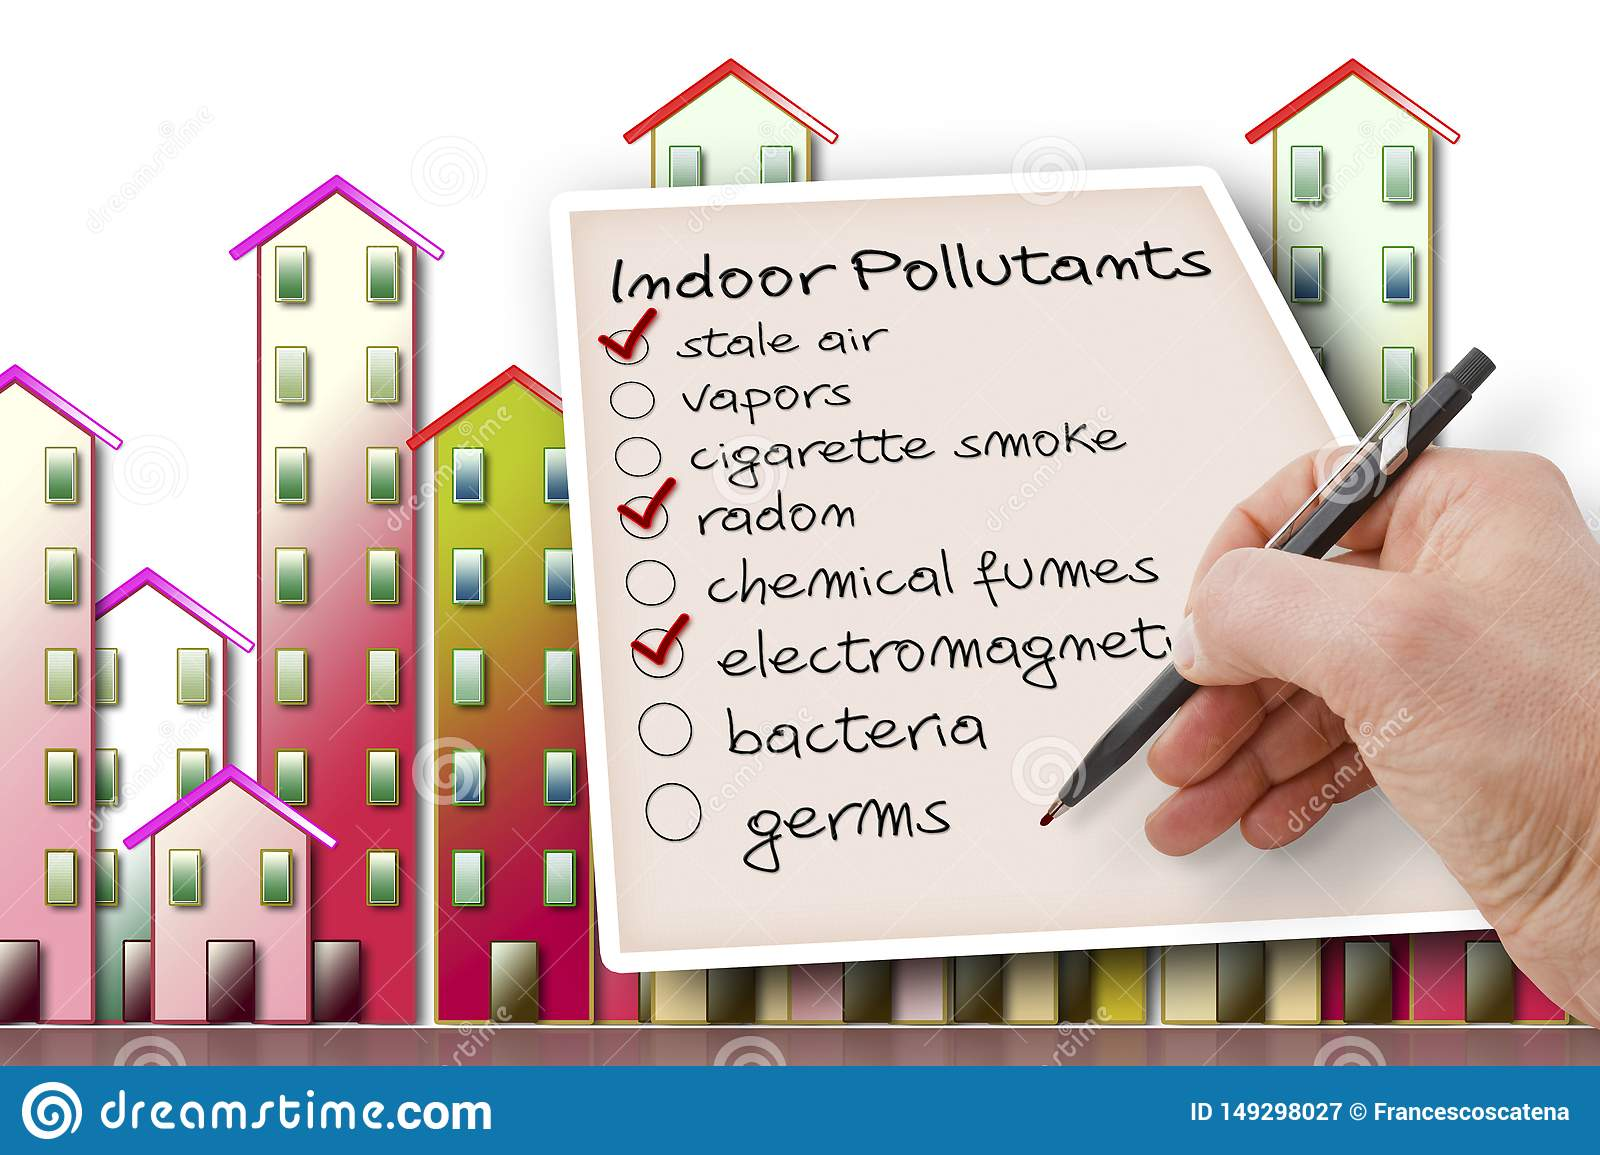 Hand Write A Check List Of Indoor Air Pollutants Against A Buildings  Background Stock Image - Image Of Cigarette, Houses: 149298027